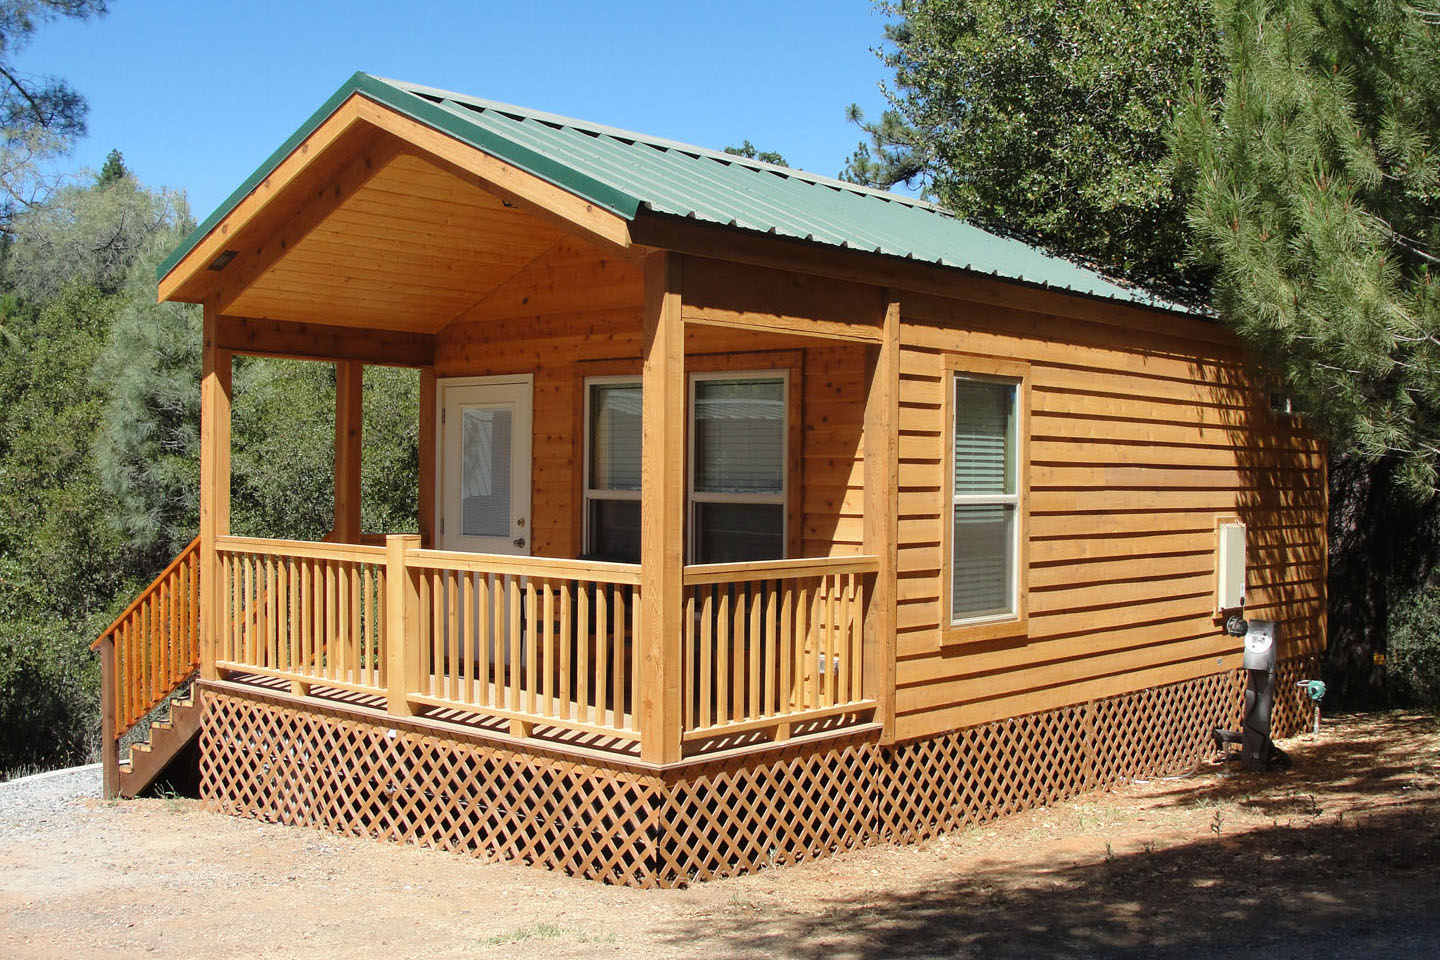 Log cabin rentals near yosemite national park for Yosemite national park cabin rentals